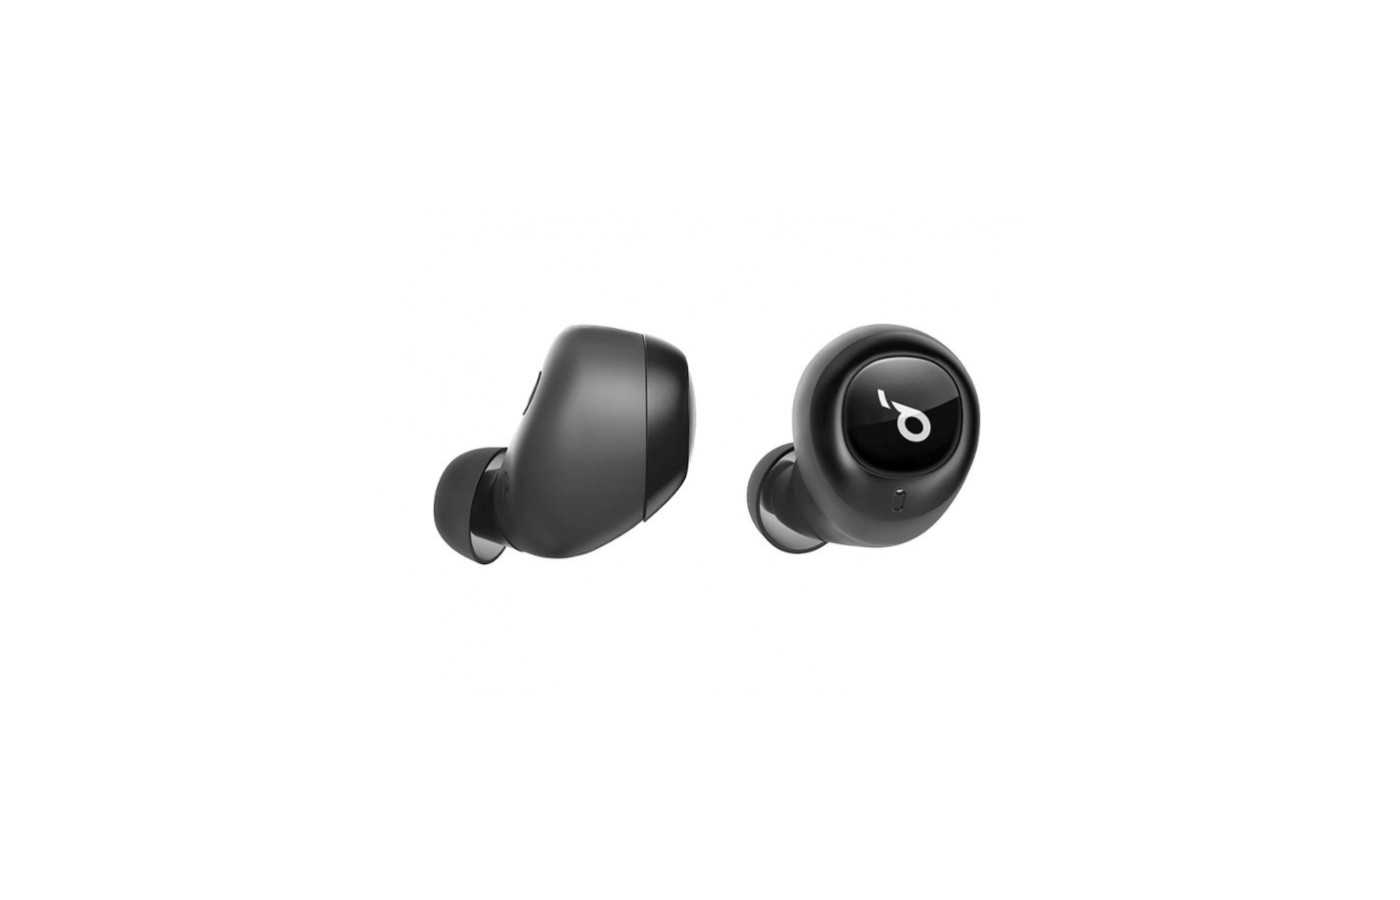 The Liberty Neo is outfitted with silicone ear tips.